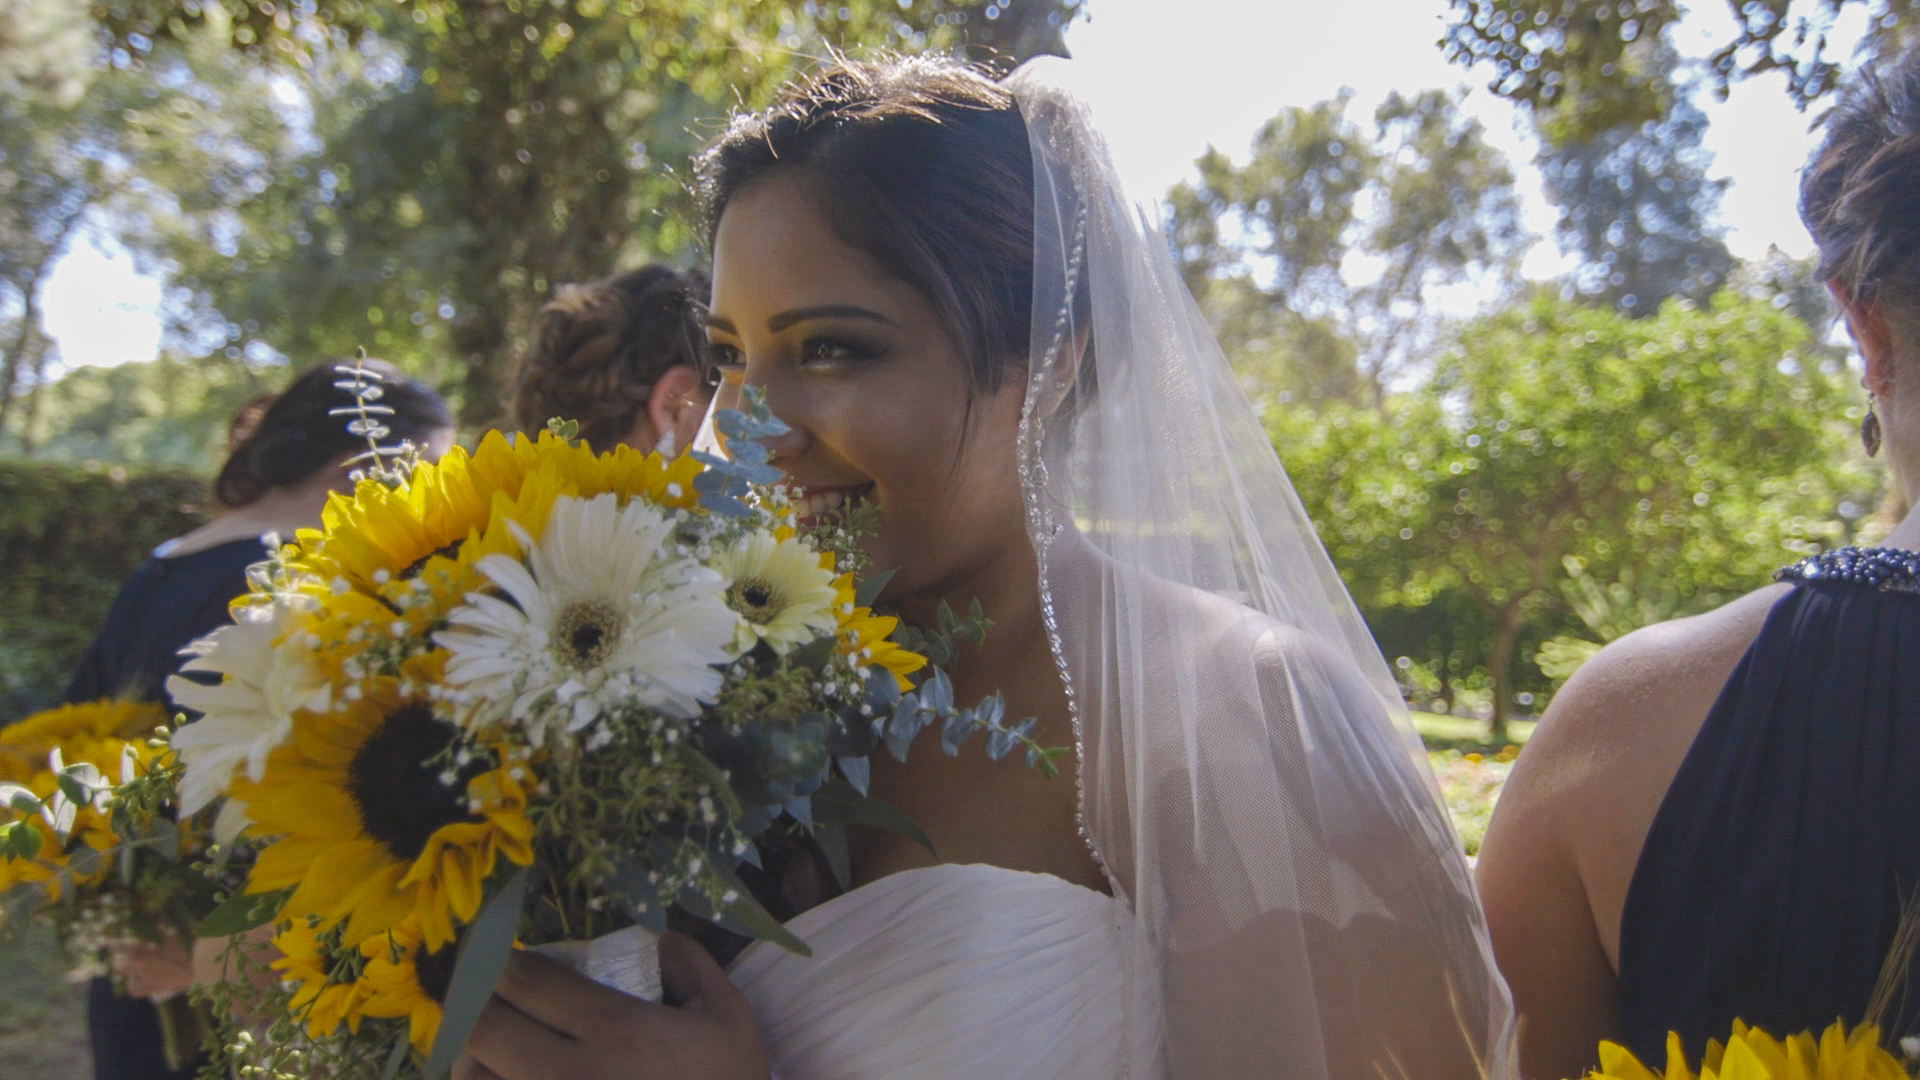 Orange county wedding location, outdoor wedding photography, wedding videography, sunflower, bouquet